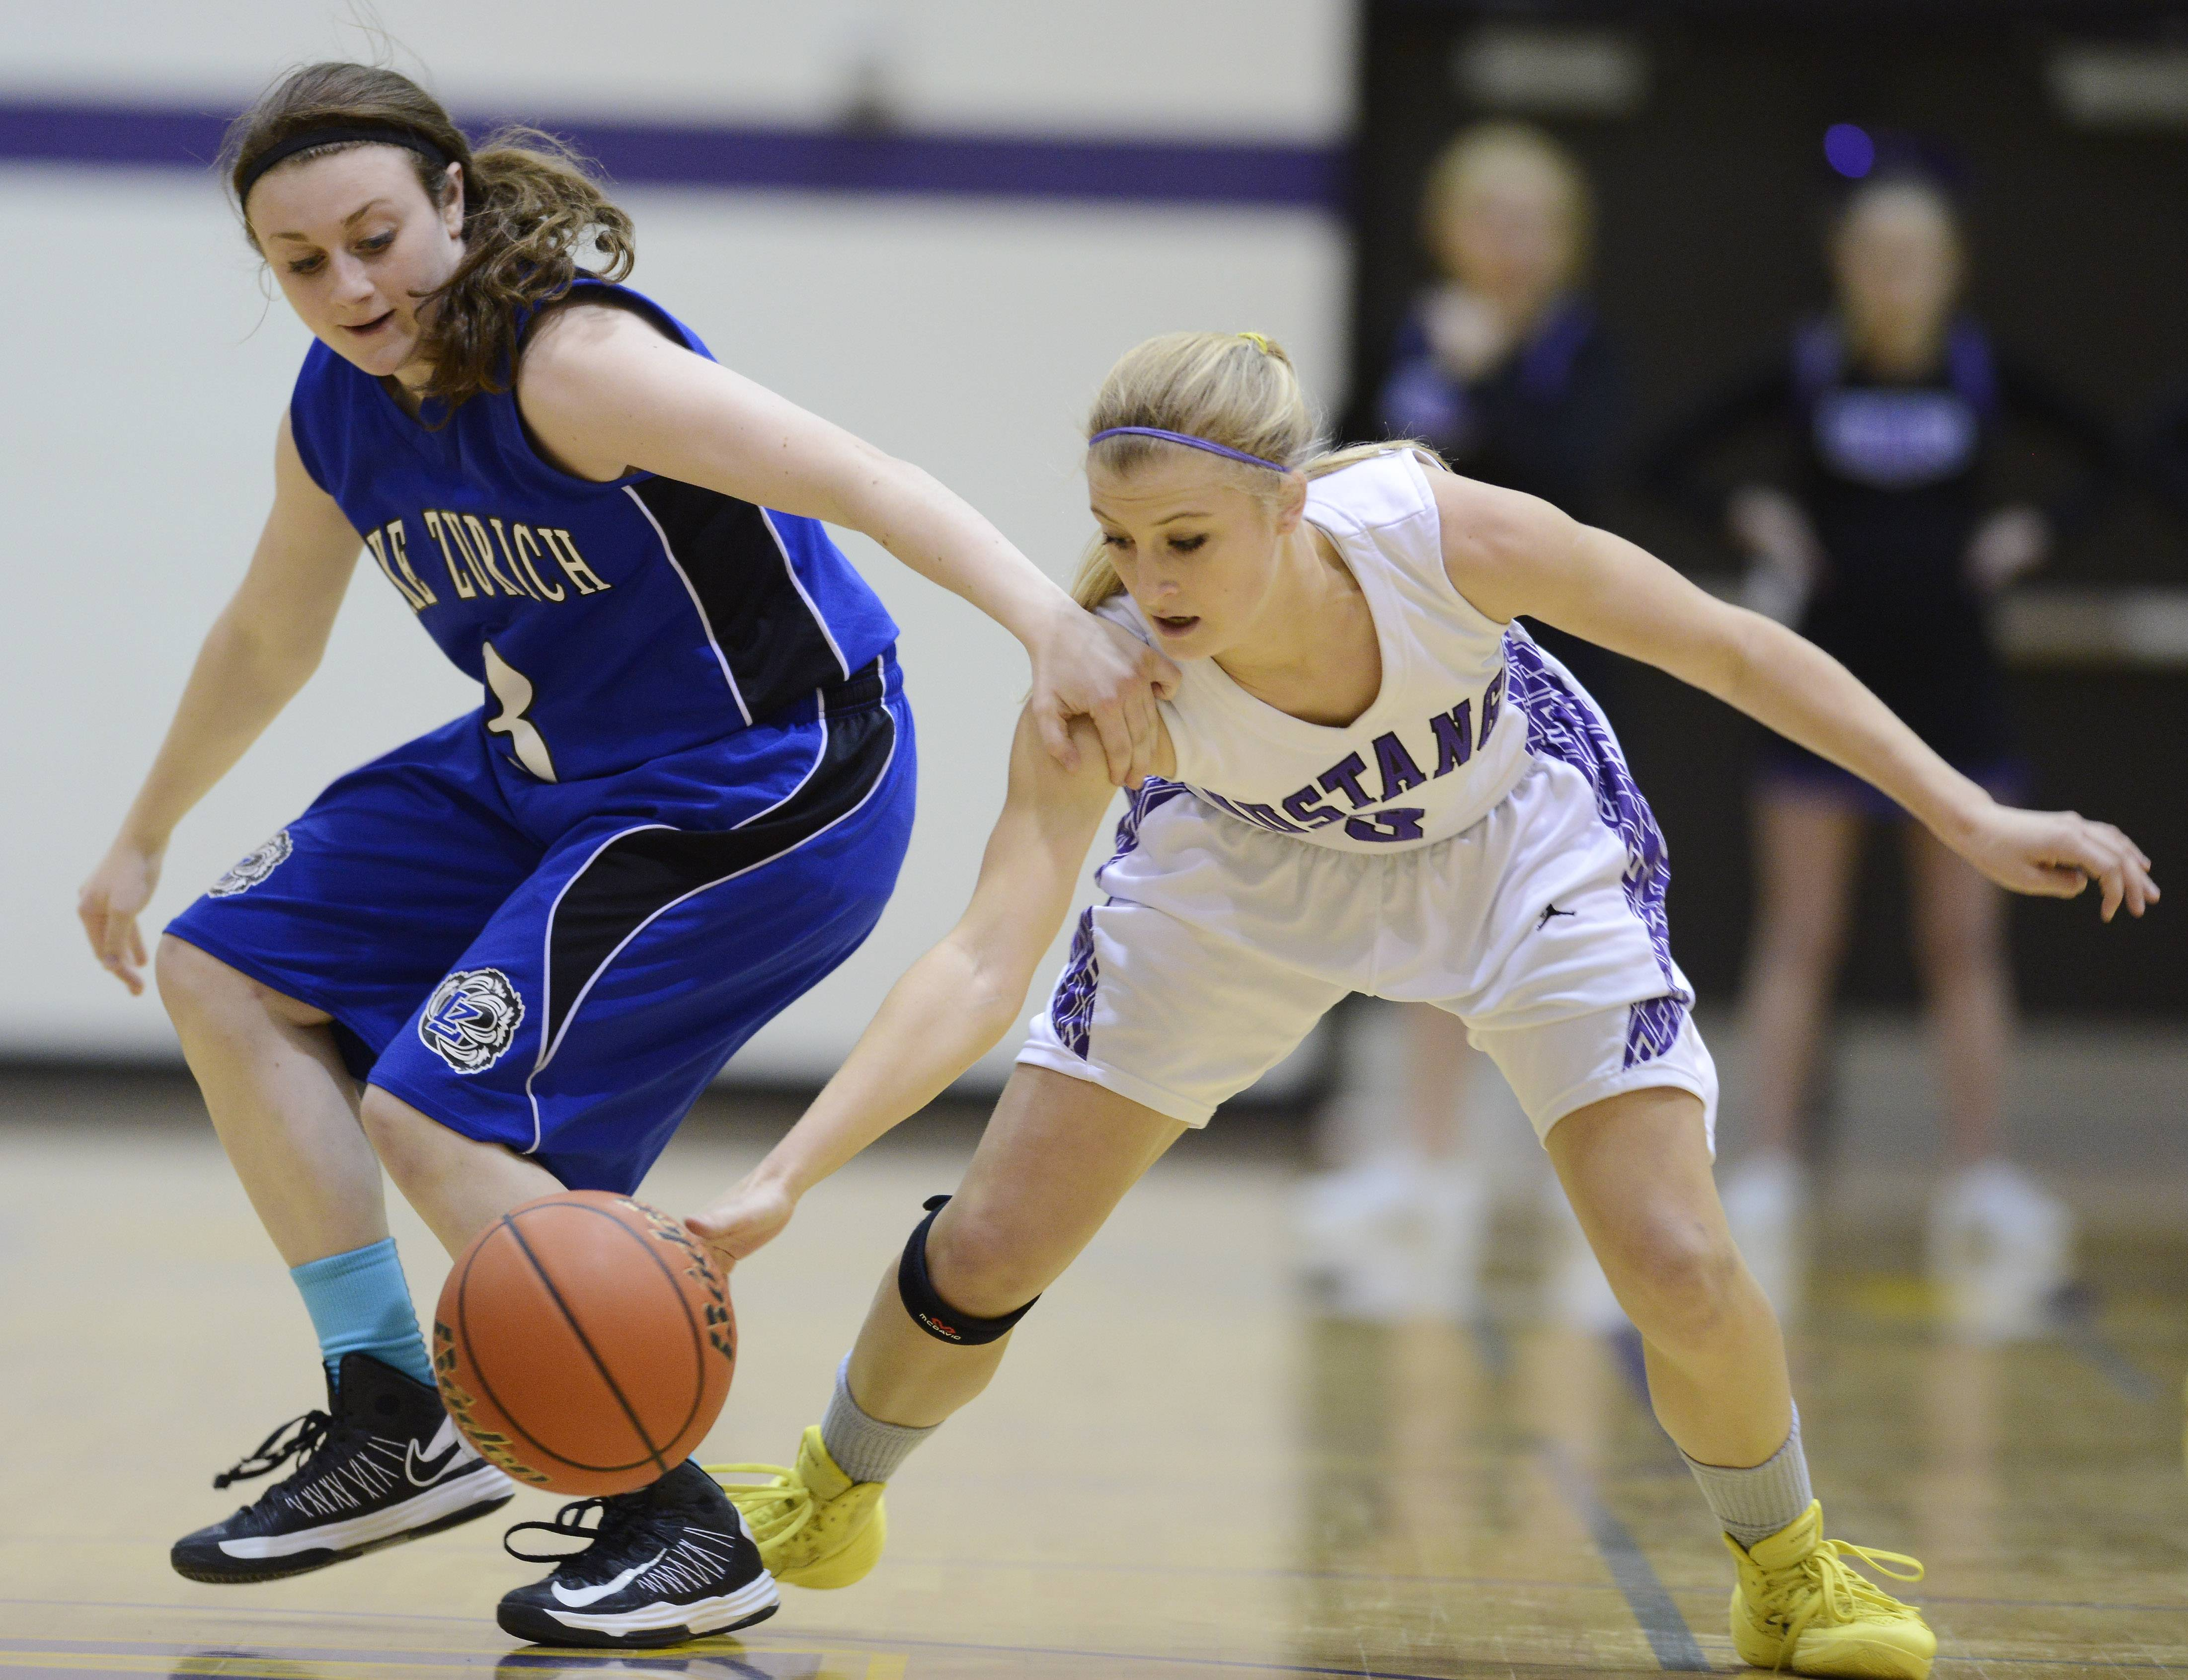 Rolling Meadows' Jackie Kemph, right, steals the ball from Lake Zurich's Frankie Nasco.